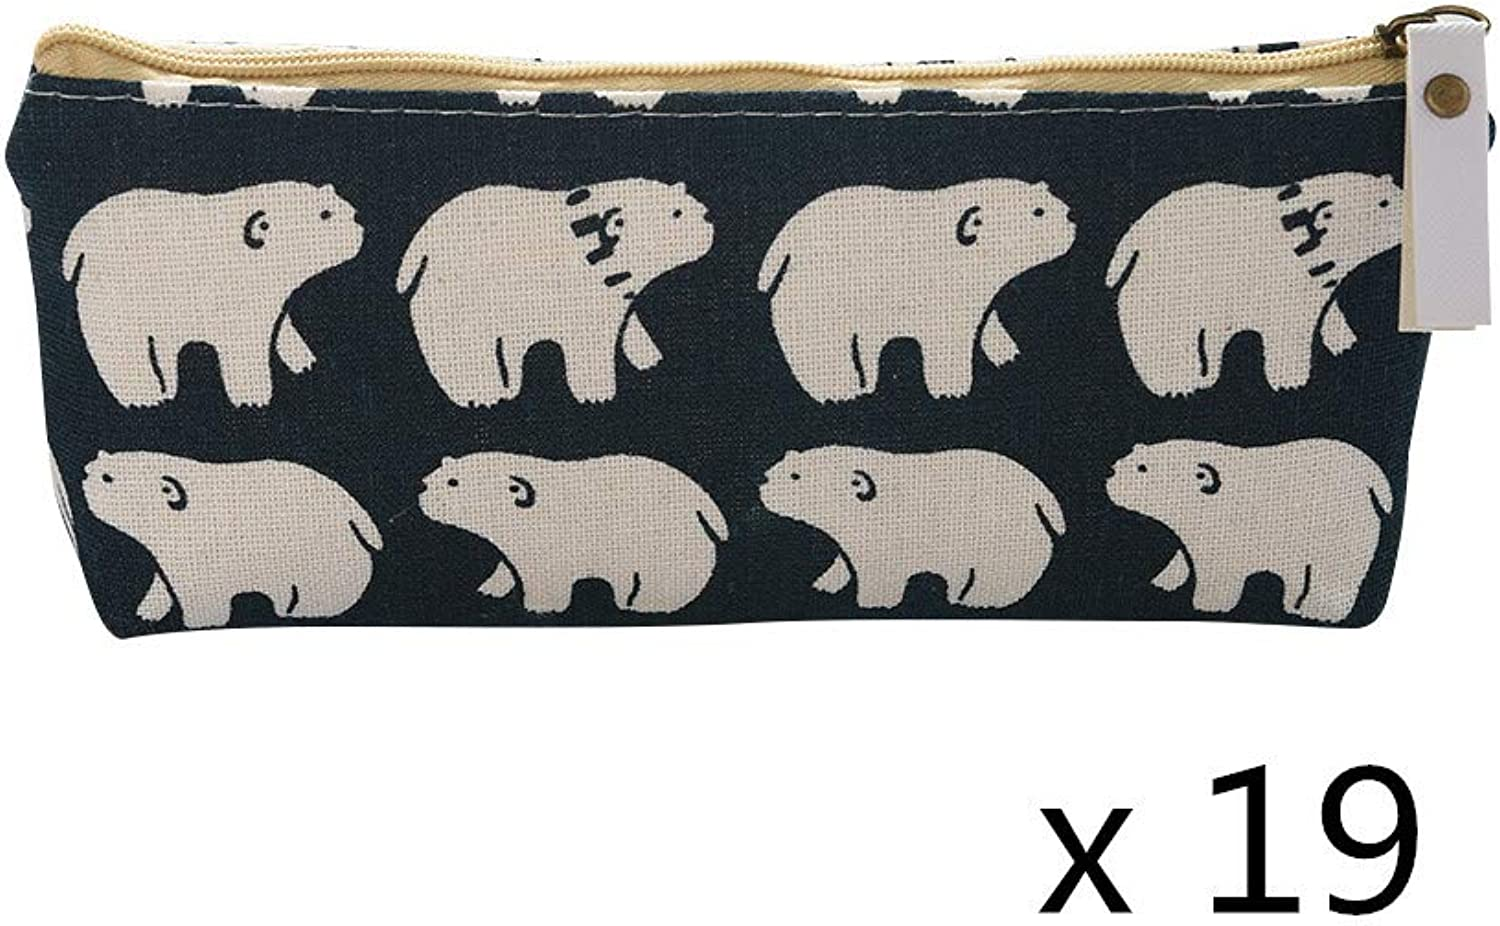 19x Universal Pencil Case Style A